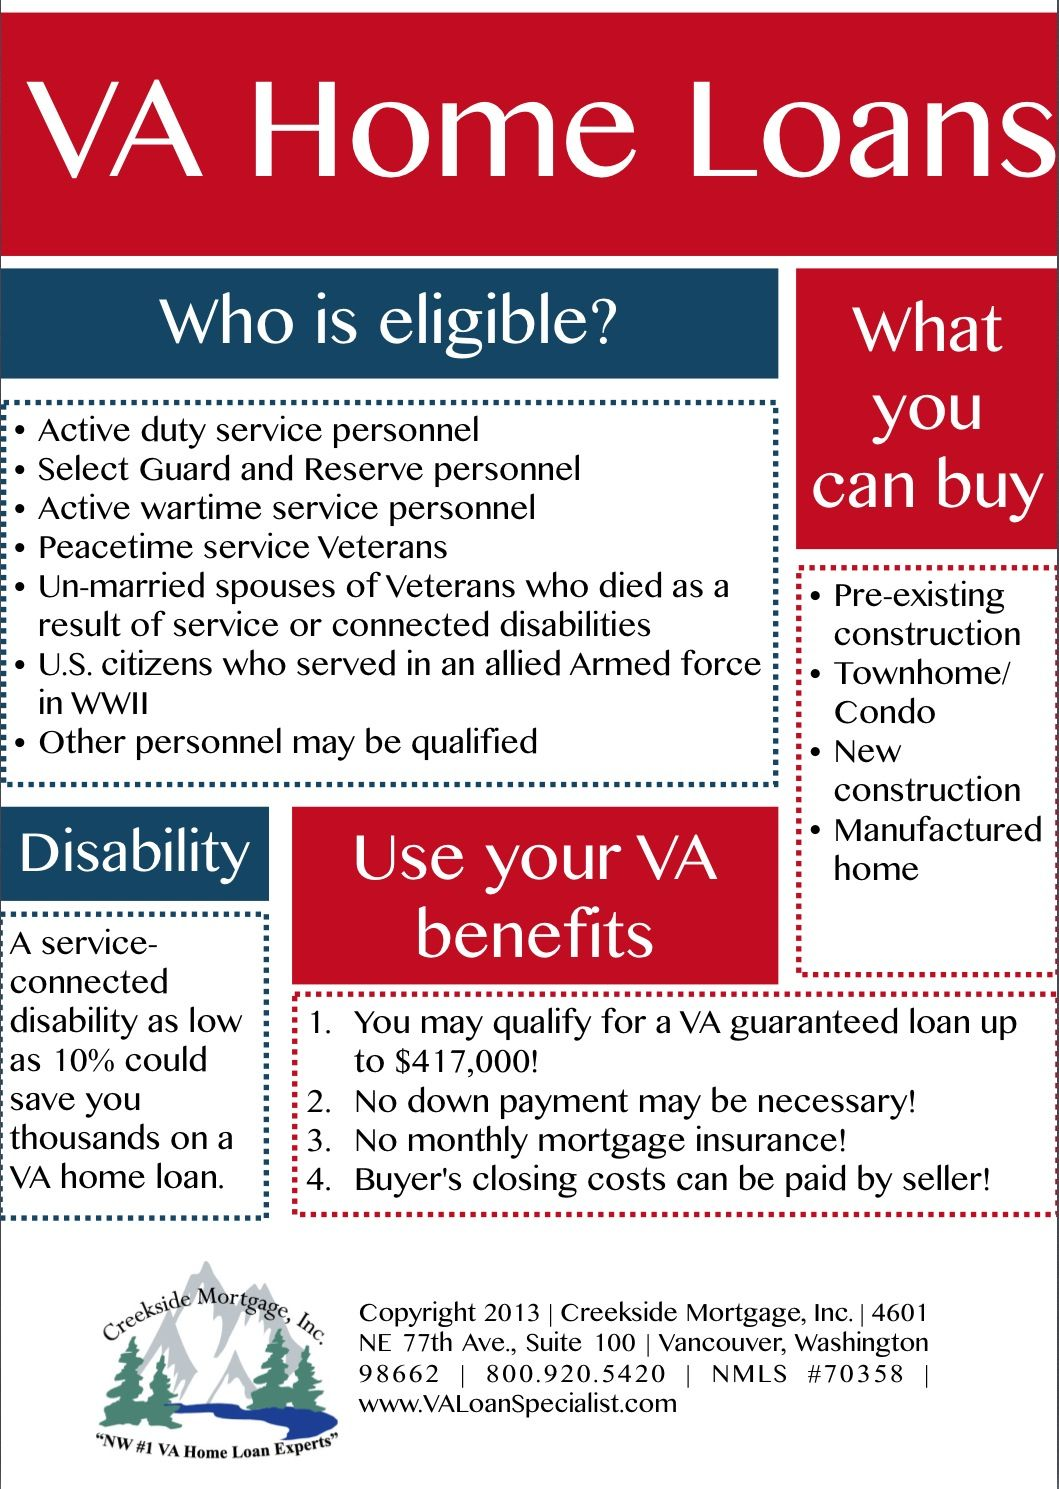 va home  loans are the specialty at creekside mortgage